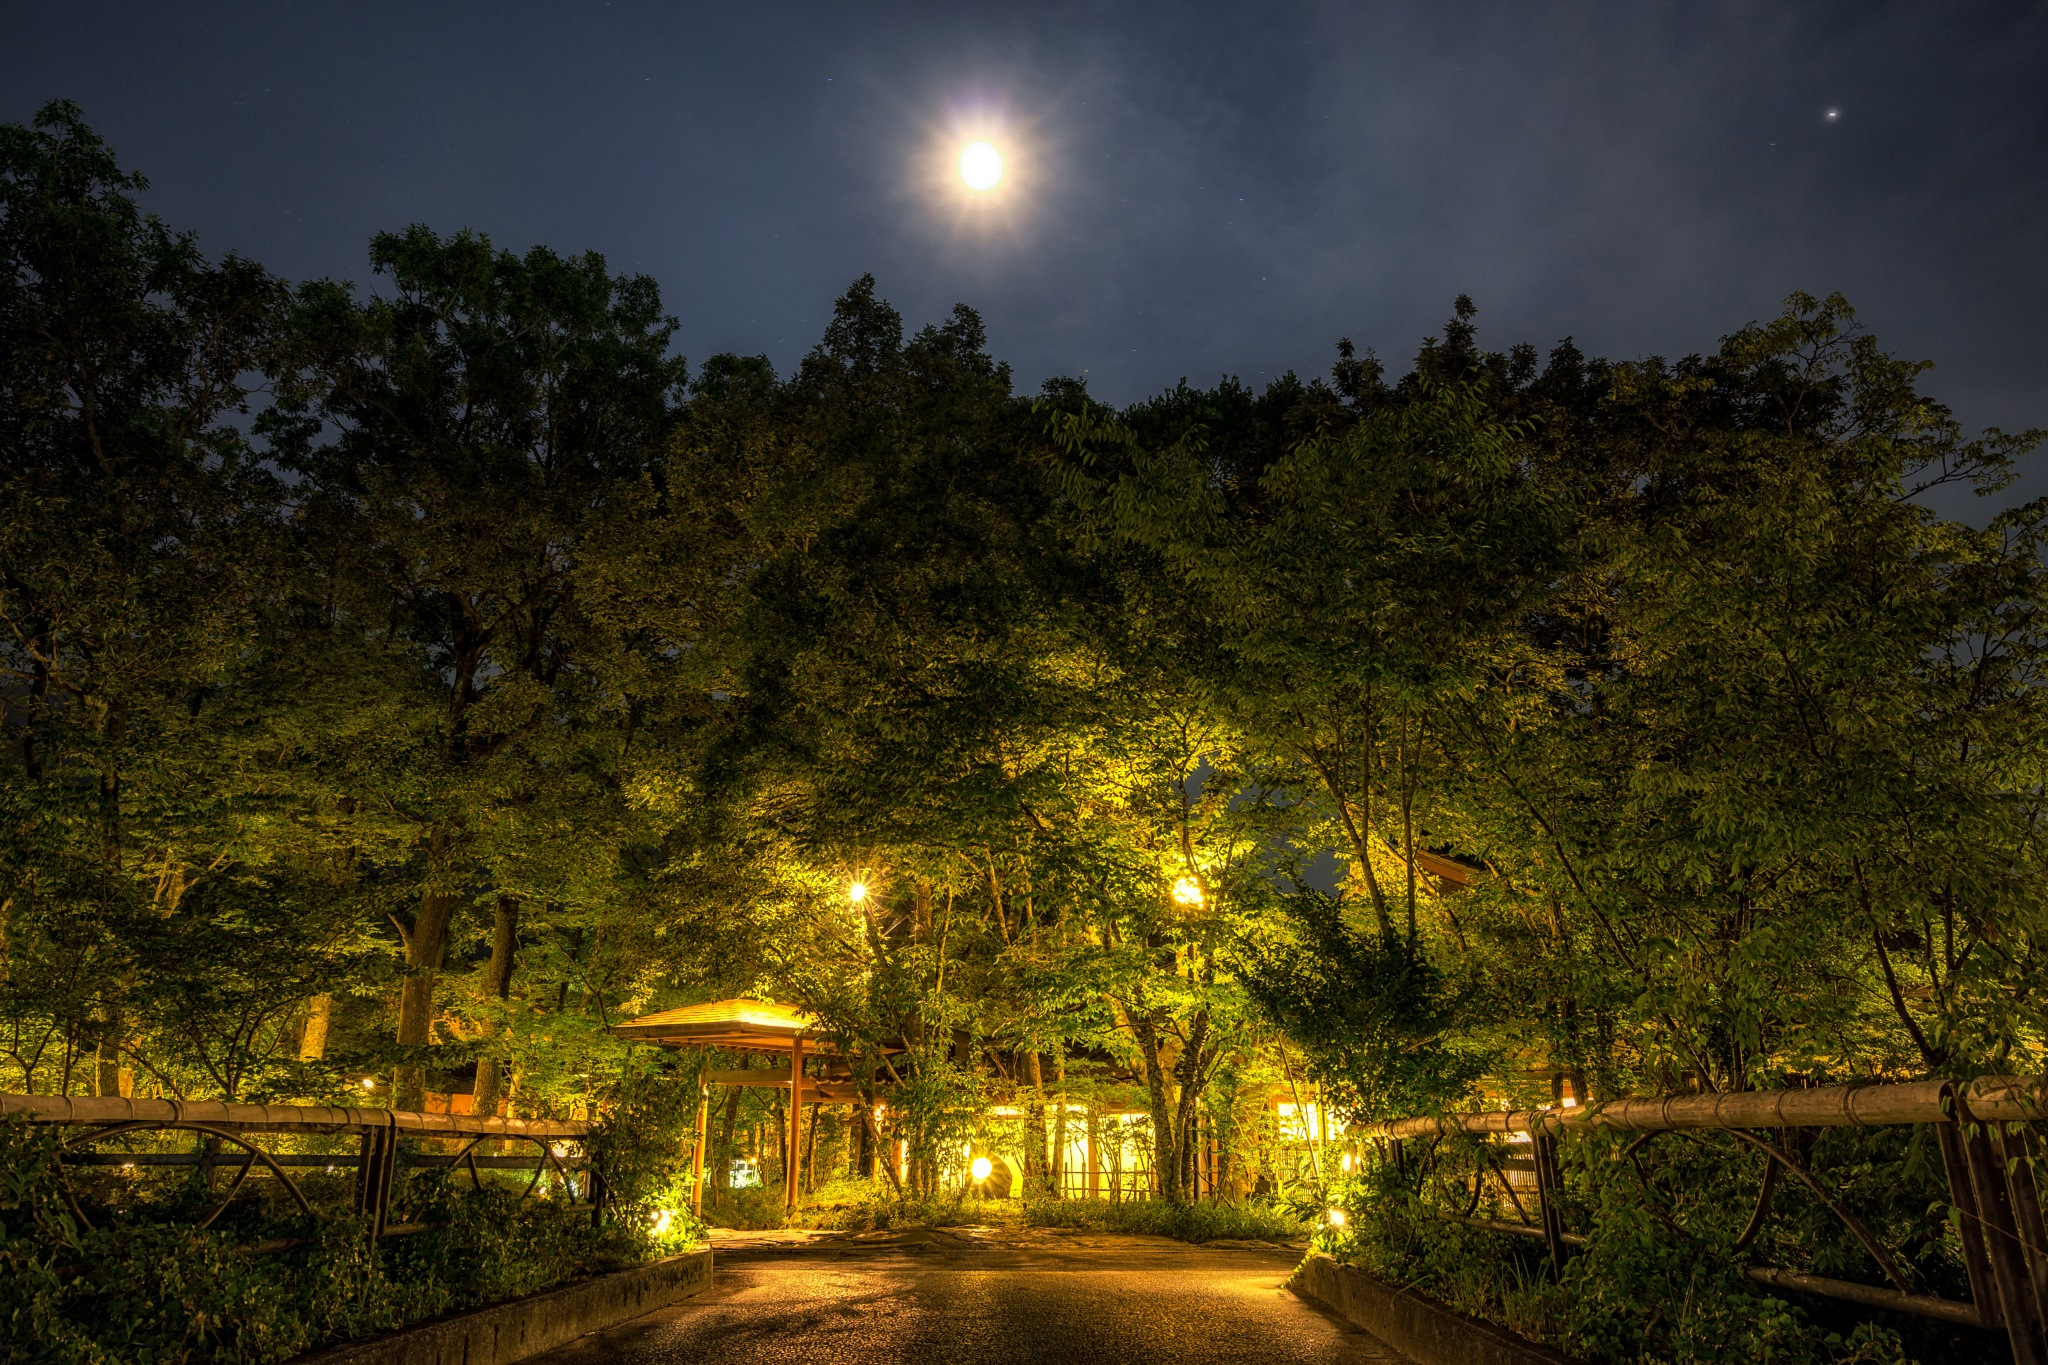 Yufuin golden forest at night by Aaron Choi